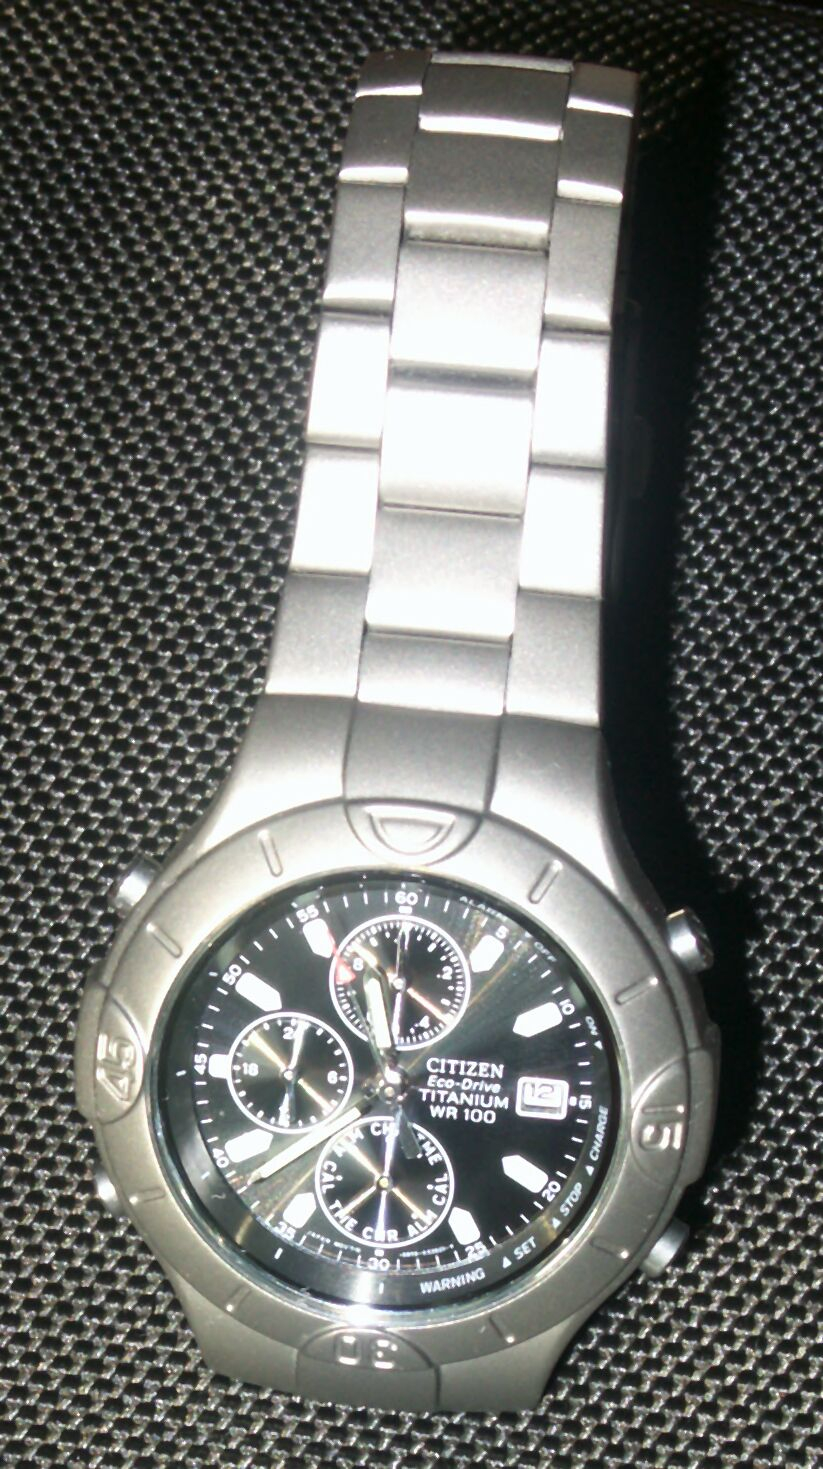 C00 Citizen Eco Drive Wr100 Manual | Wiring Library Pertaining To Citizen Eco Drive Chronograph Wr100 Manual